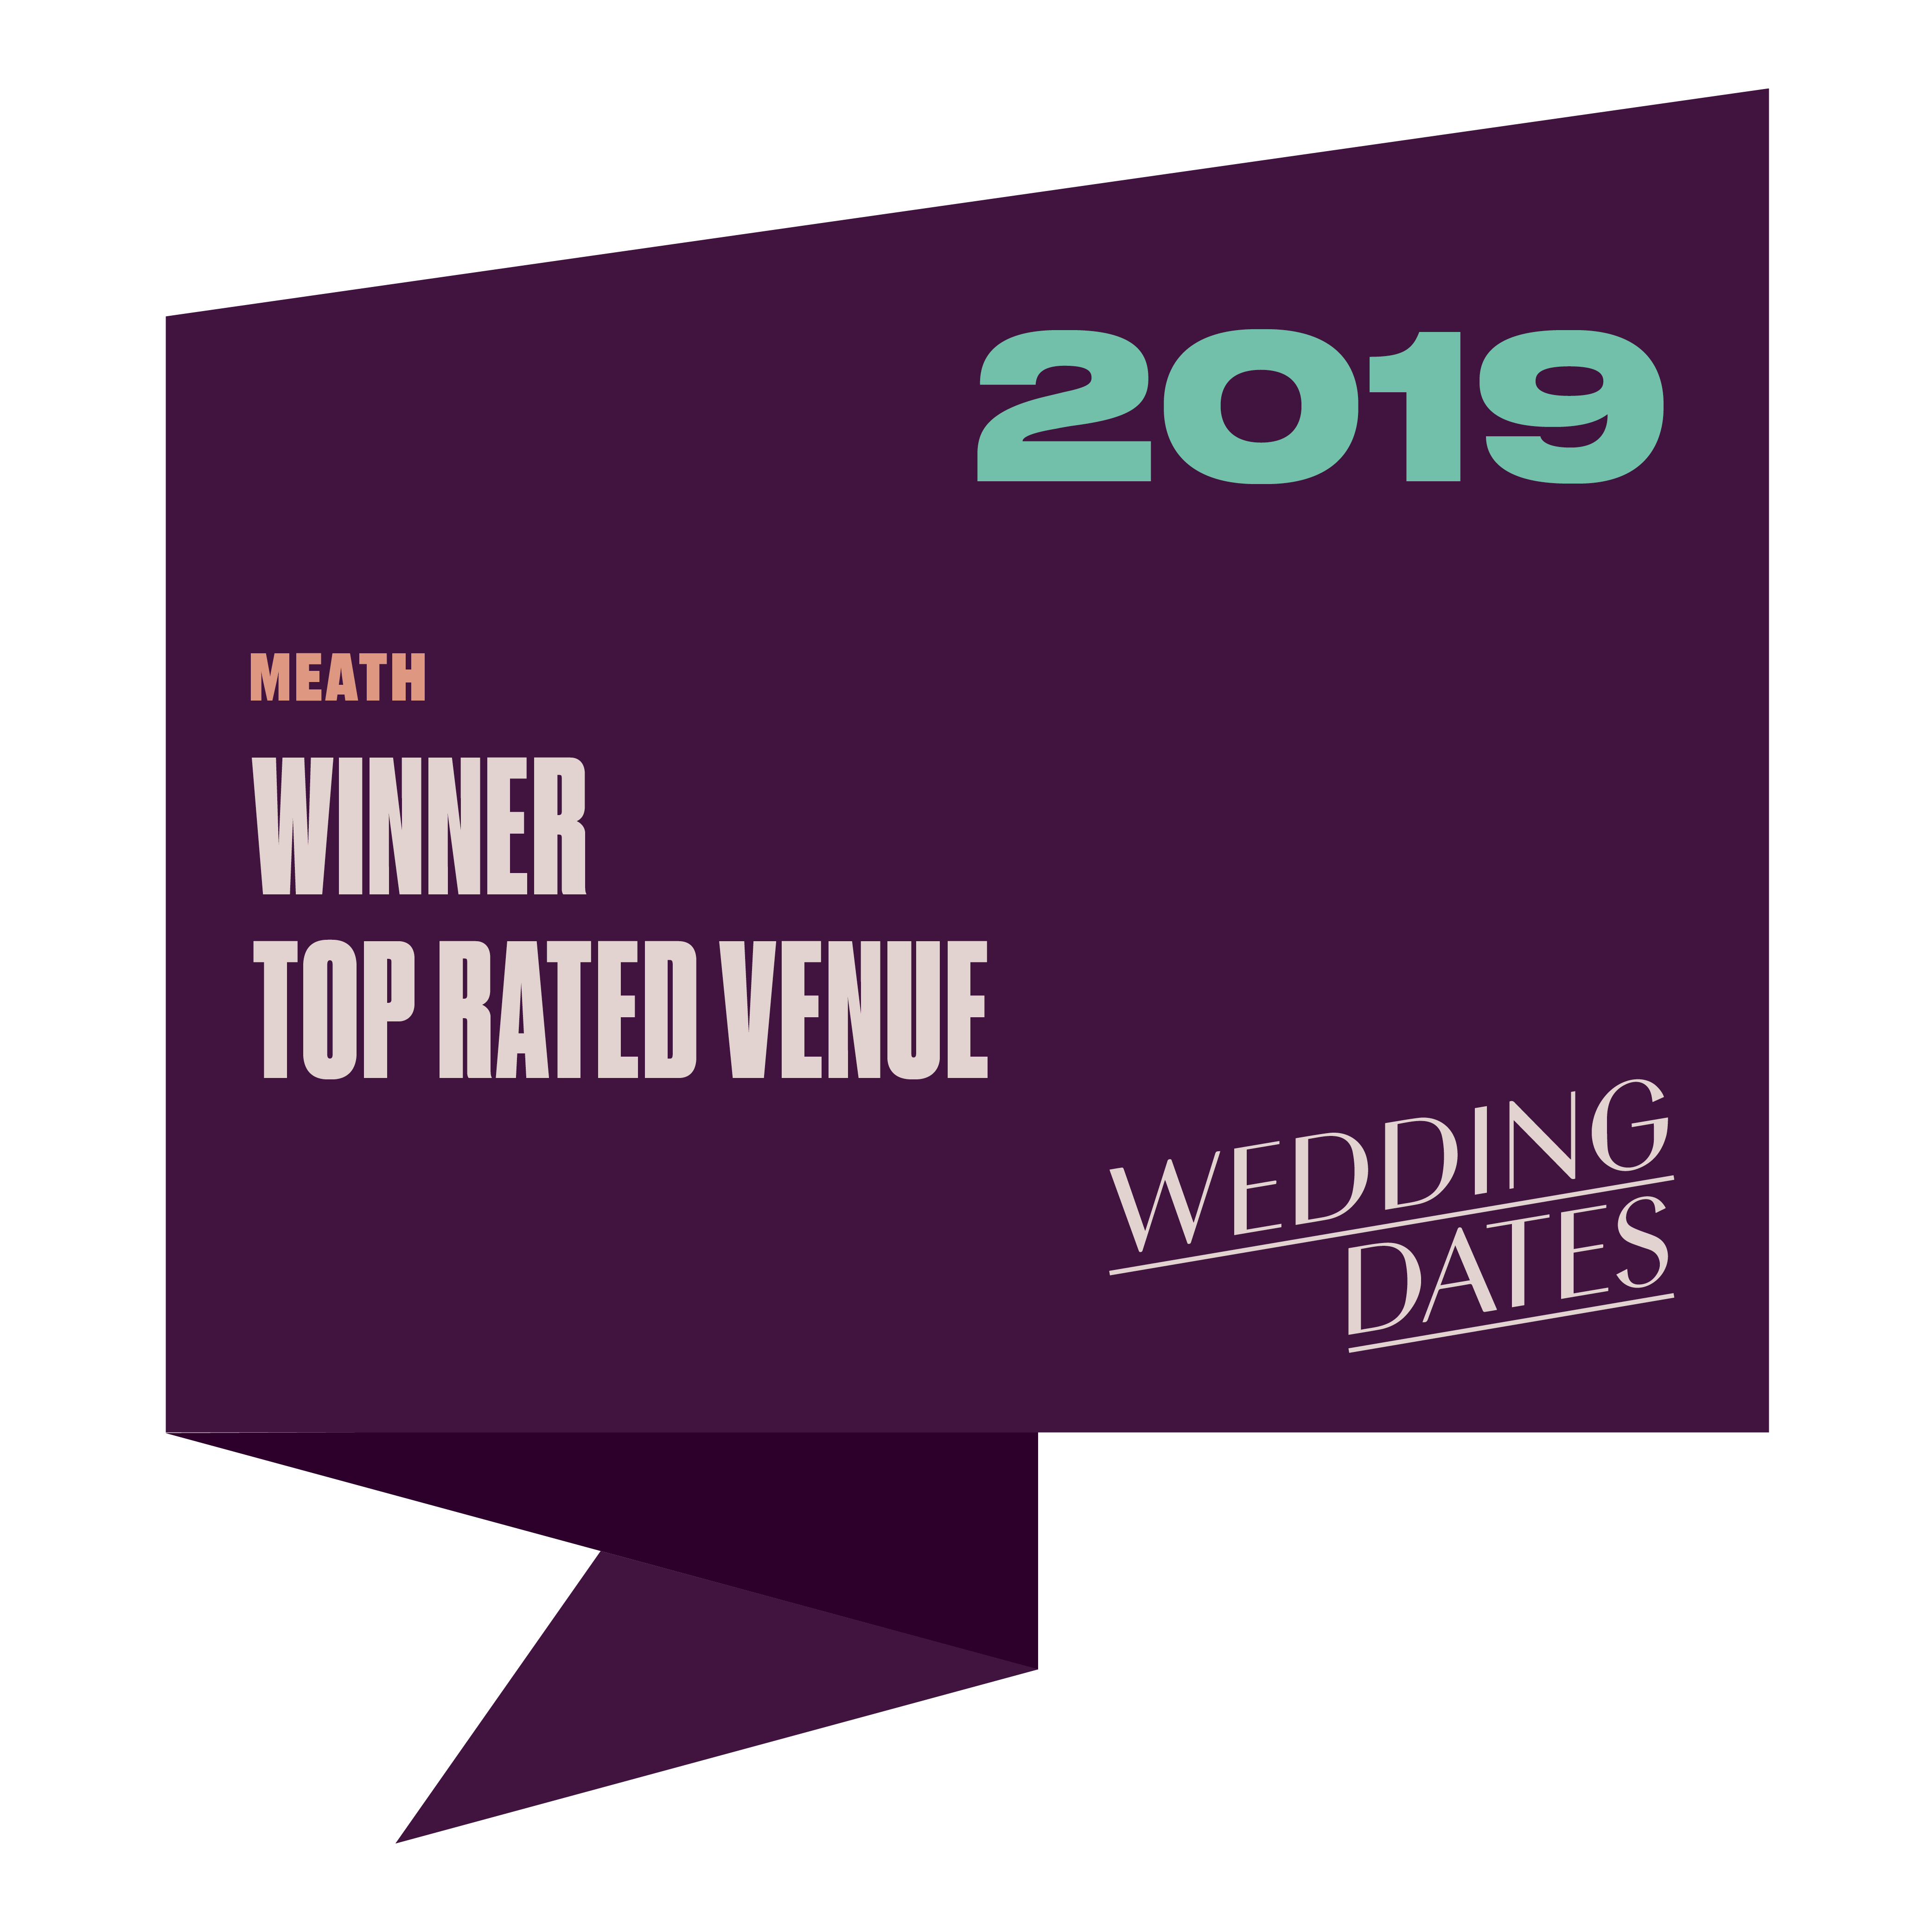 Top Rated Wedding Venues in Meath 2019